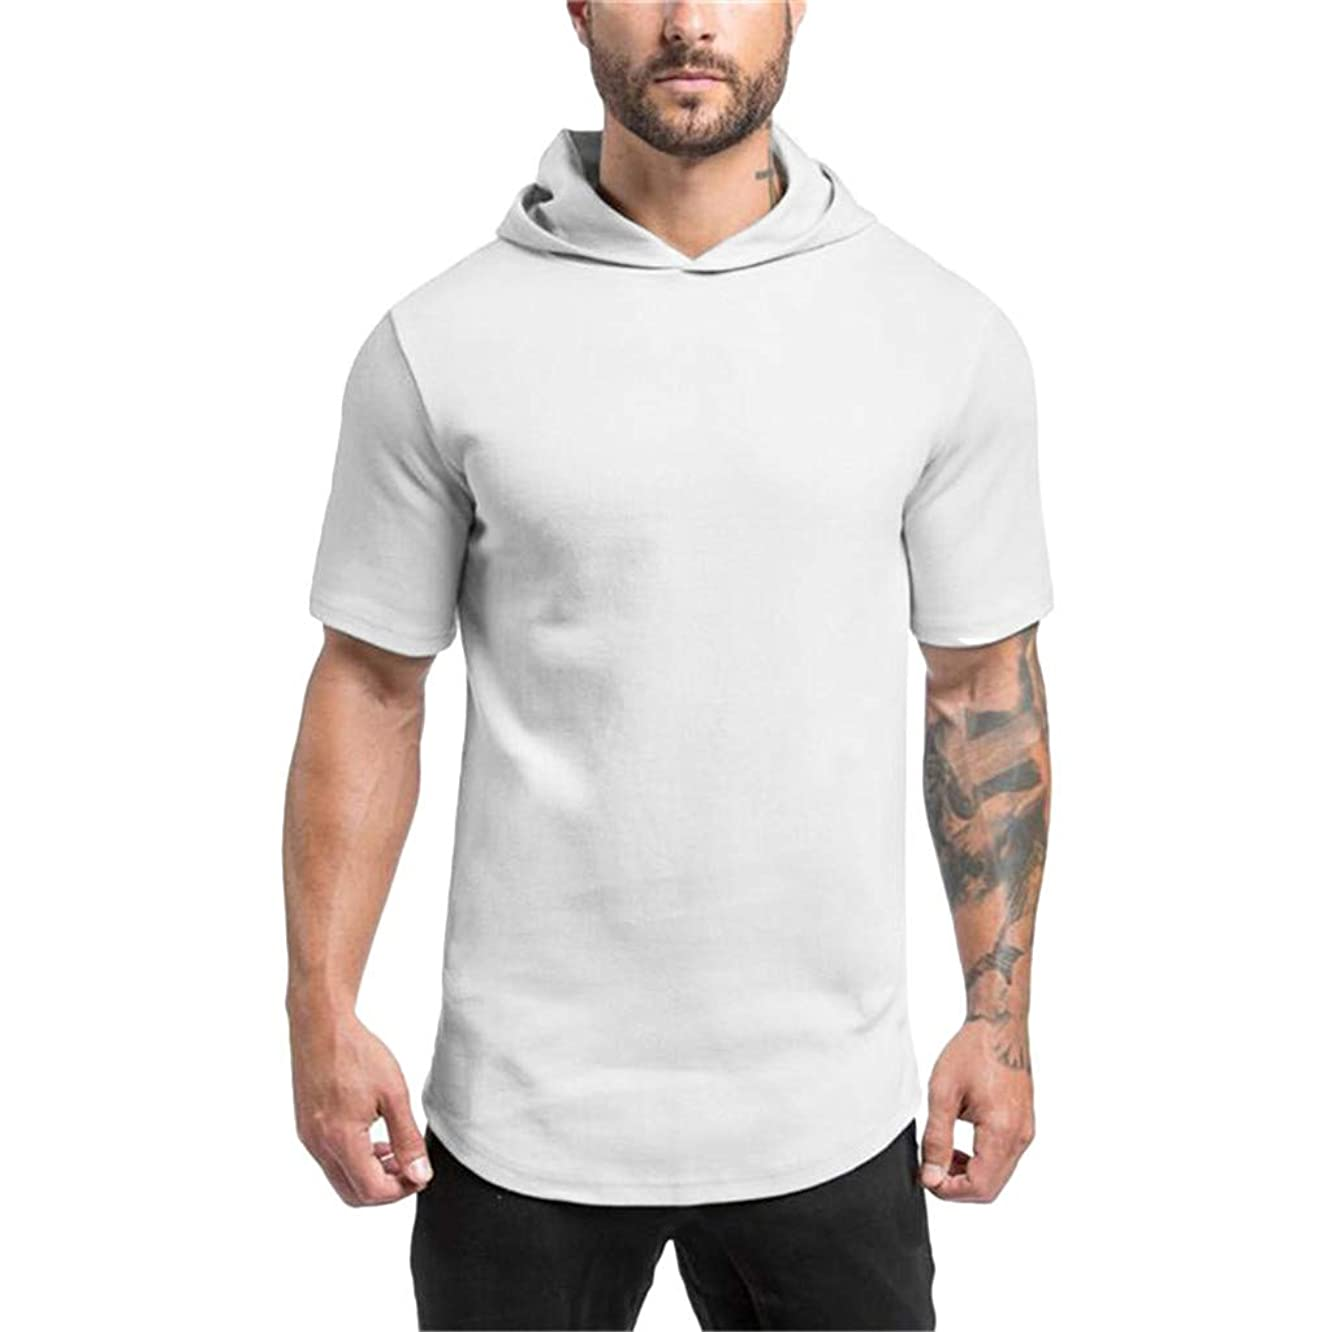 Men's Solid Short-Sleeve Hooded Shirts Slim Fit Sports Casual Tee Tops Blouse